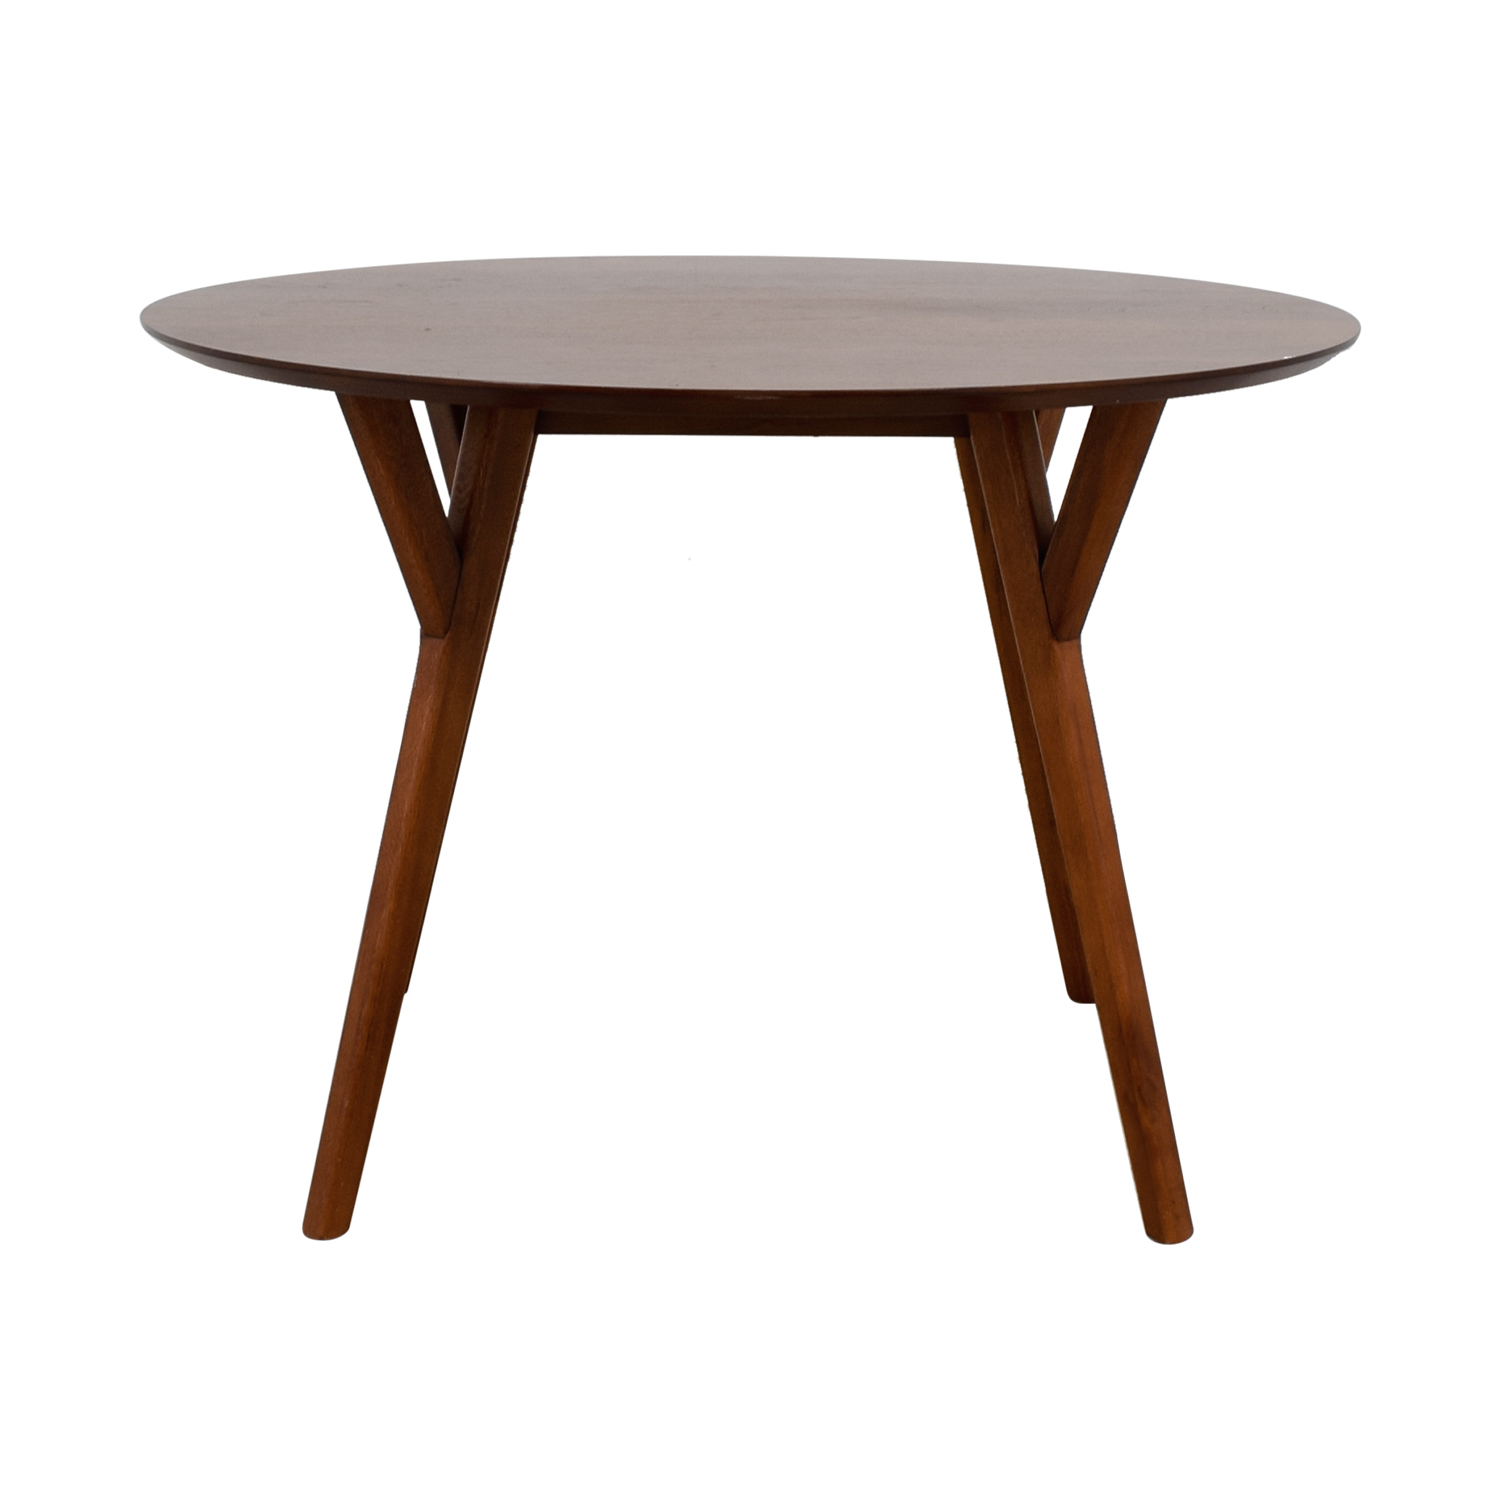 West Elm West Elm Parker Round Wood Dining Table for sale